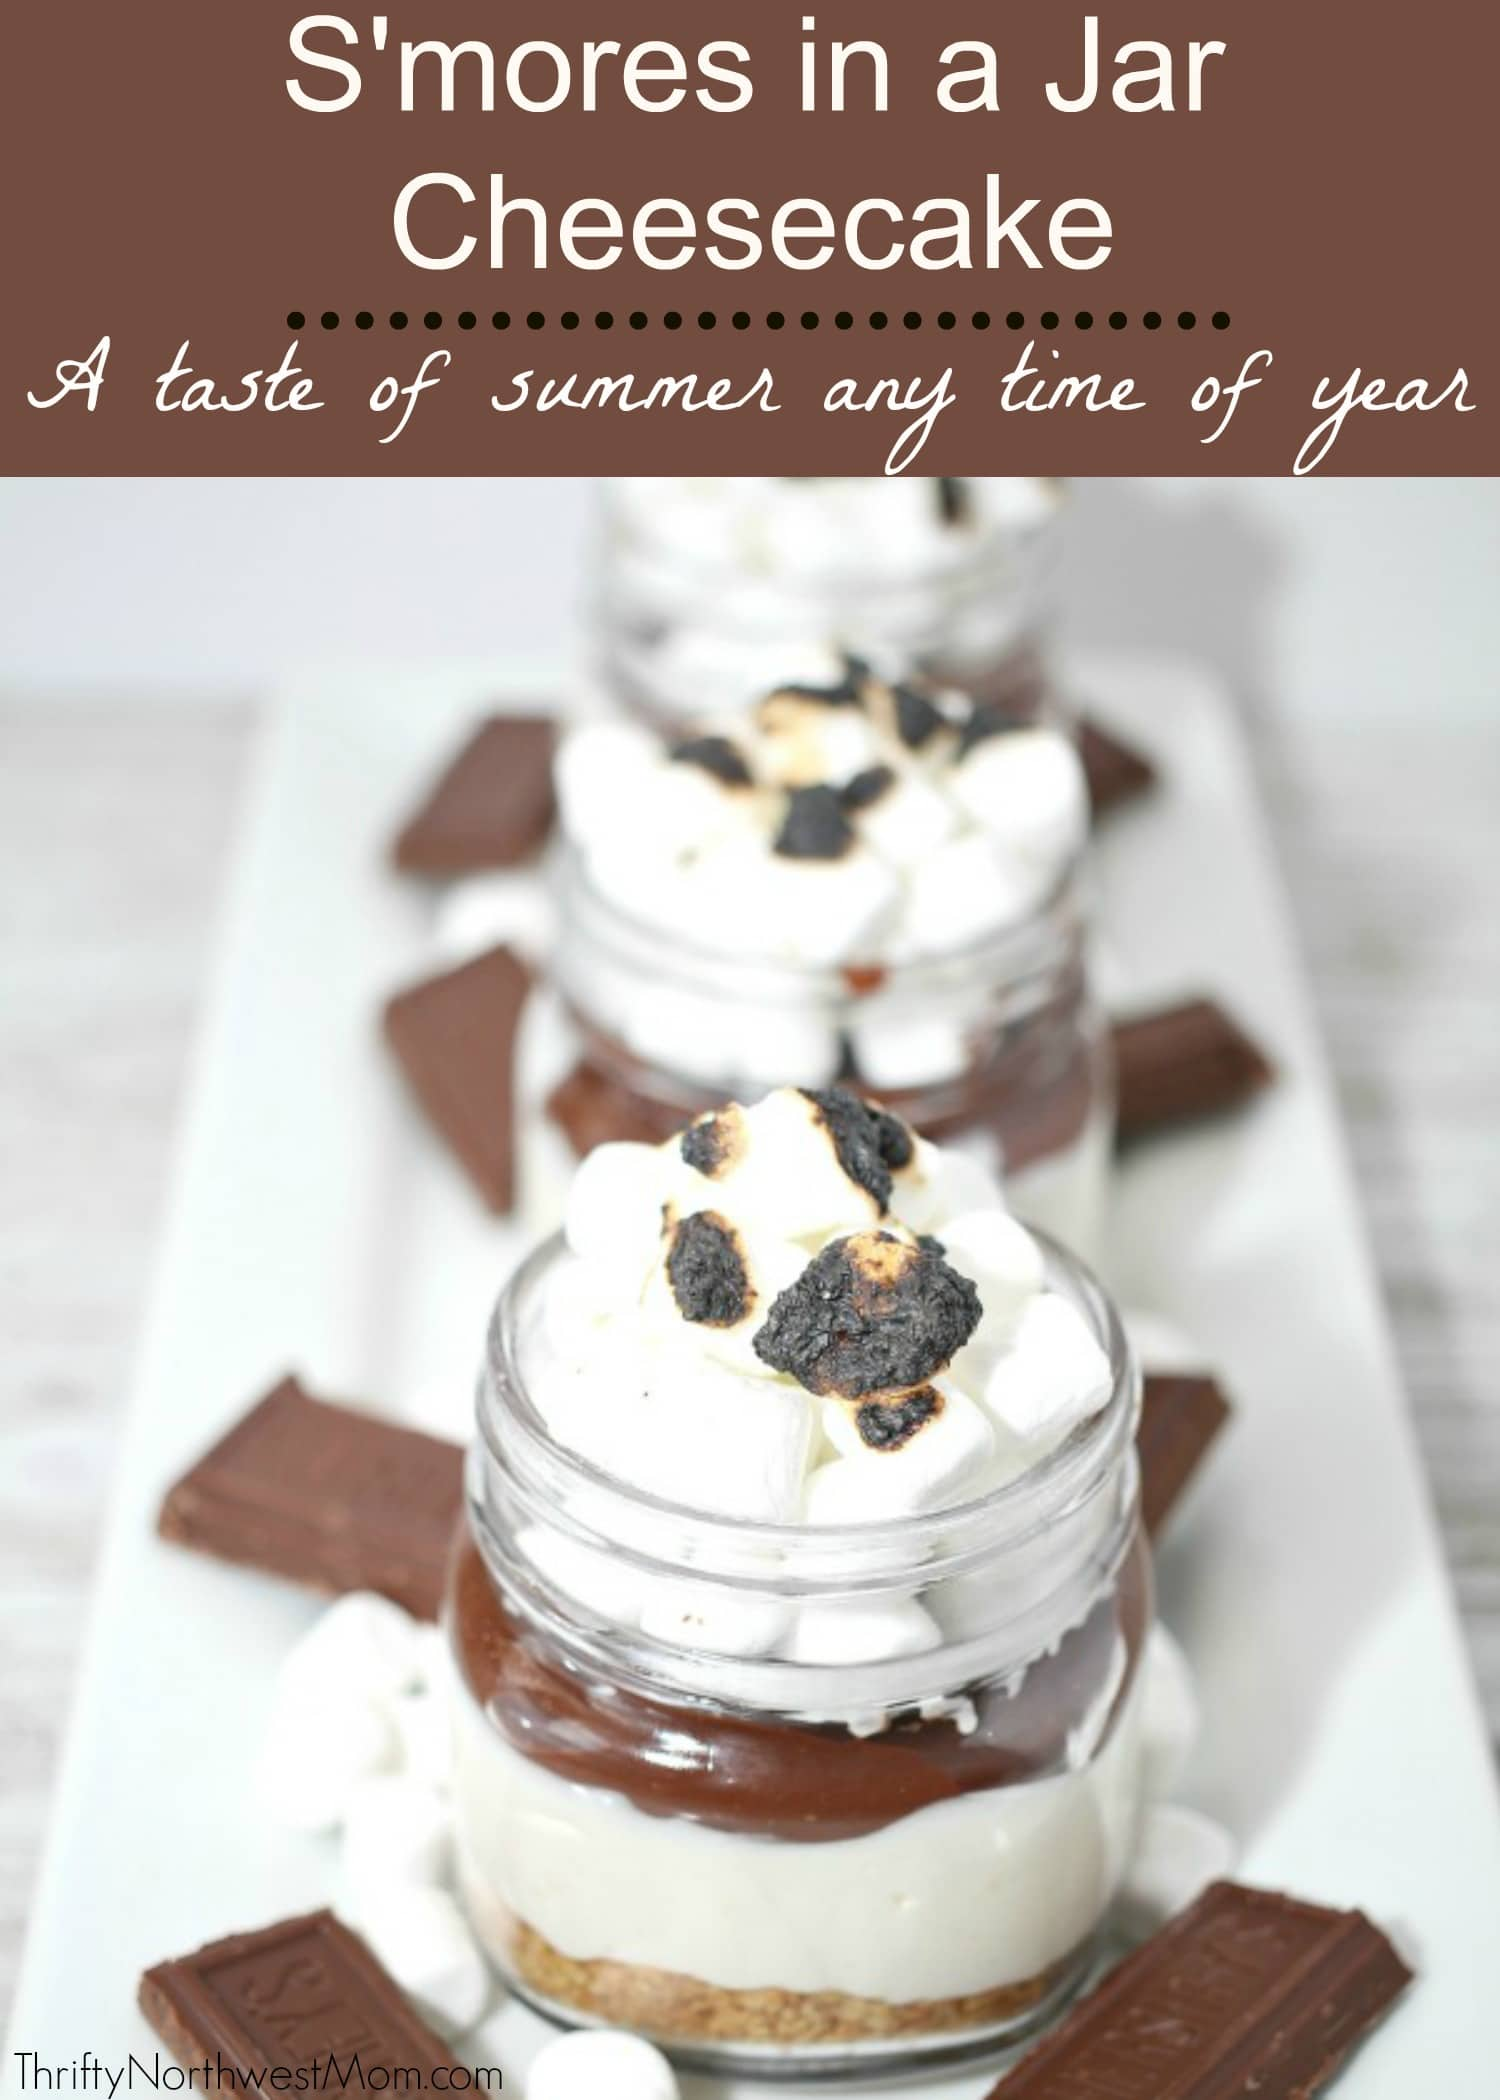 S'mores Cheesecake in a Jar Recipe - A taste of summer all year long with this simple dessert